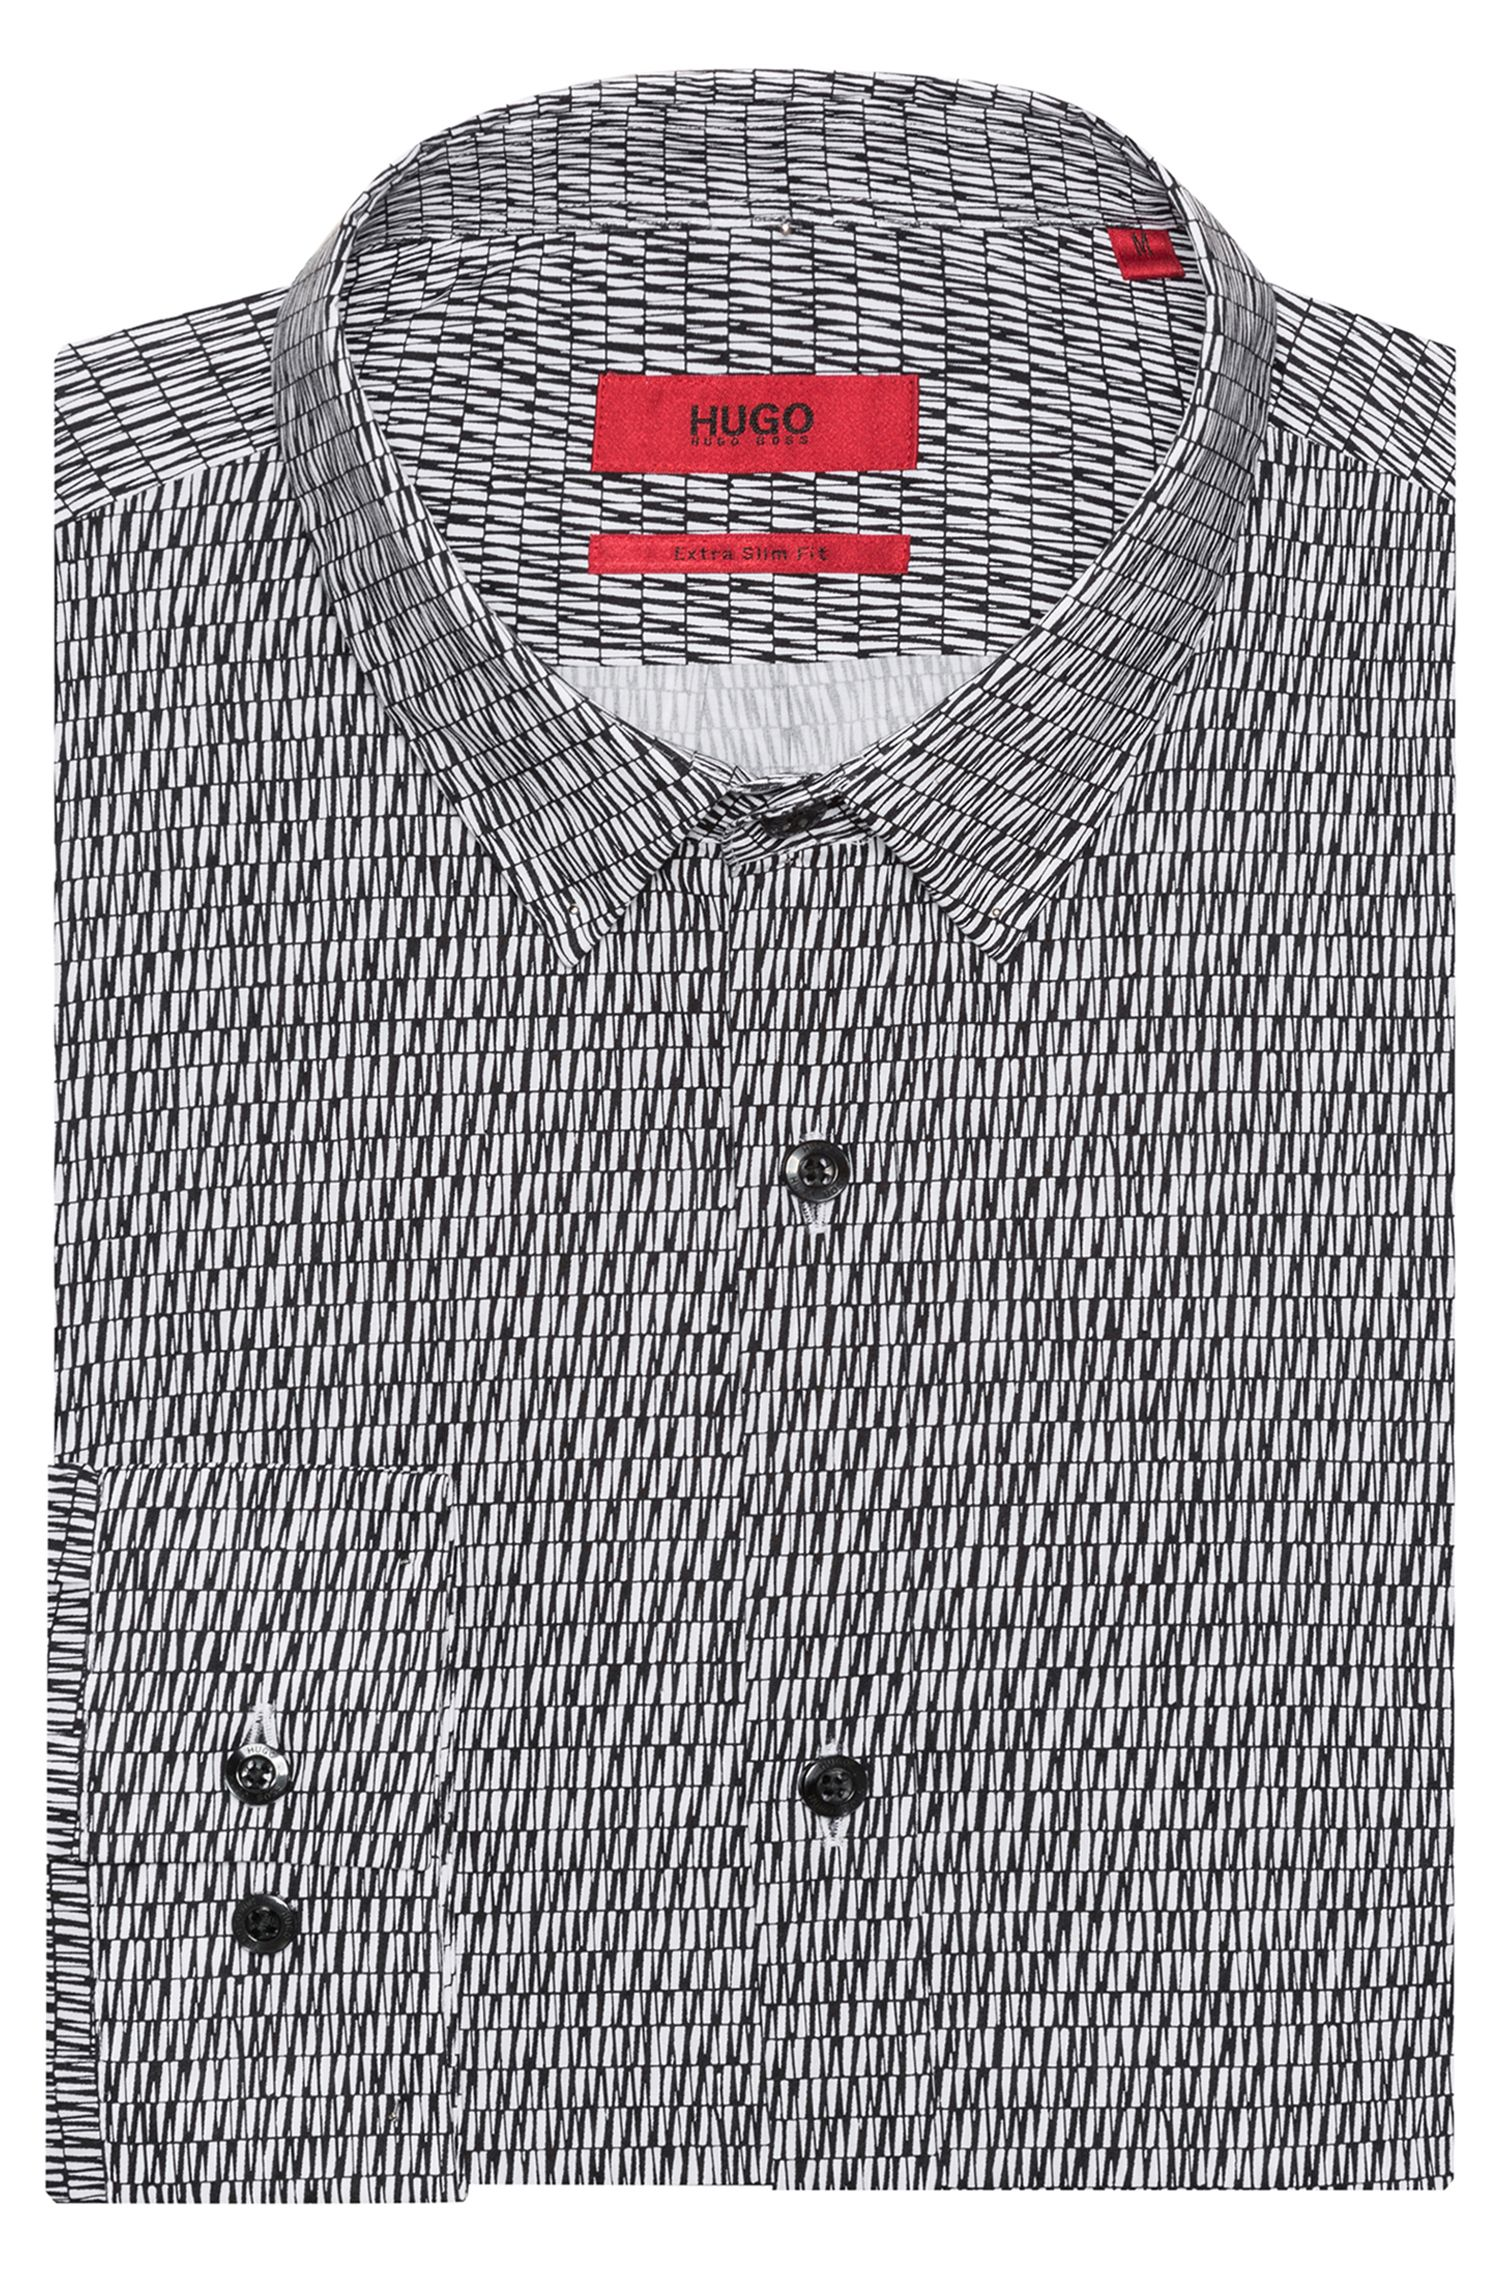 Extra-slim-fit cotton shirt with graphic pigment print